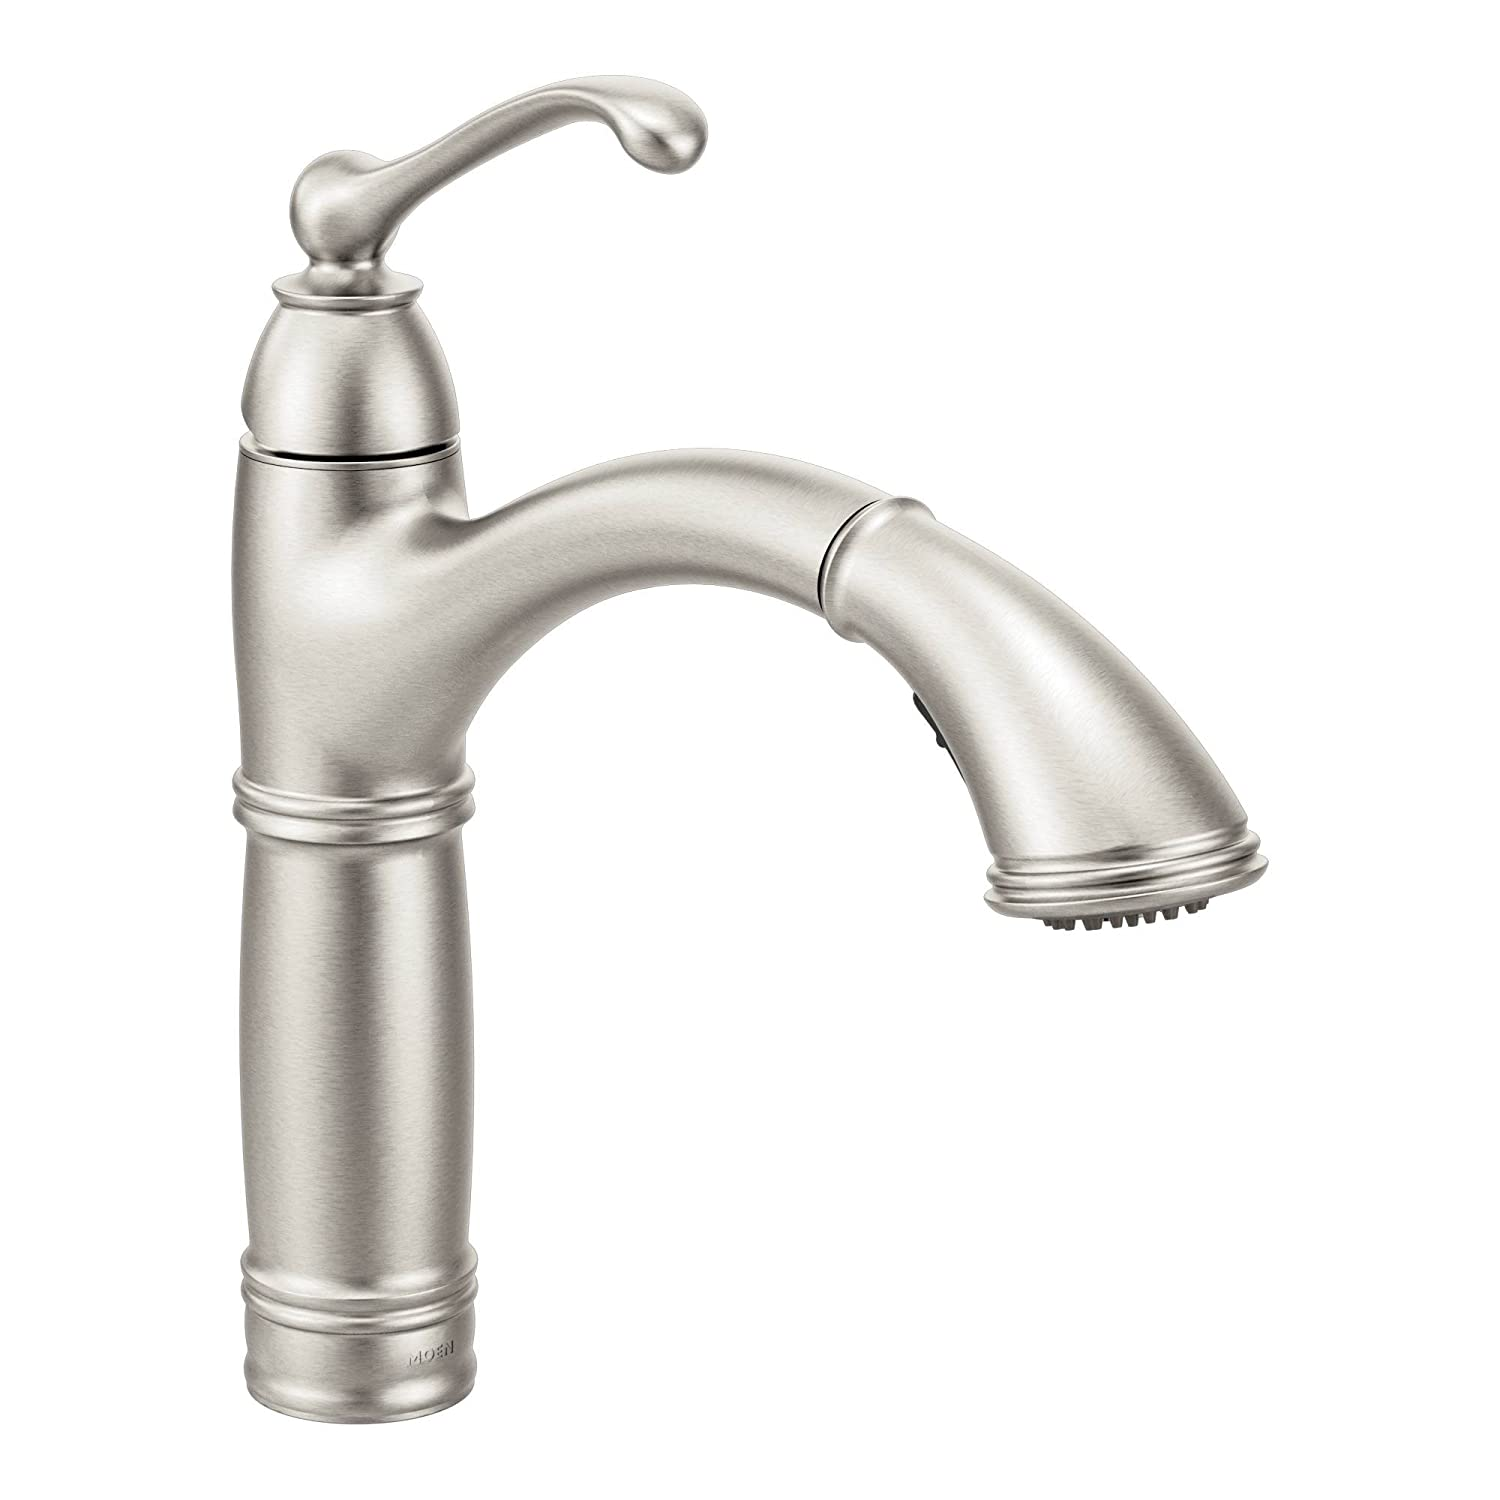 Moen 7295SRS Brantford One-Handle High Arc Pullout Kitchen Faucet, Spot Resist Stainless by Moen B01BP5S0RS